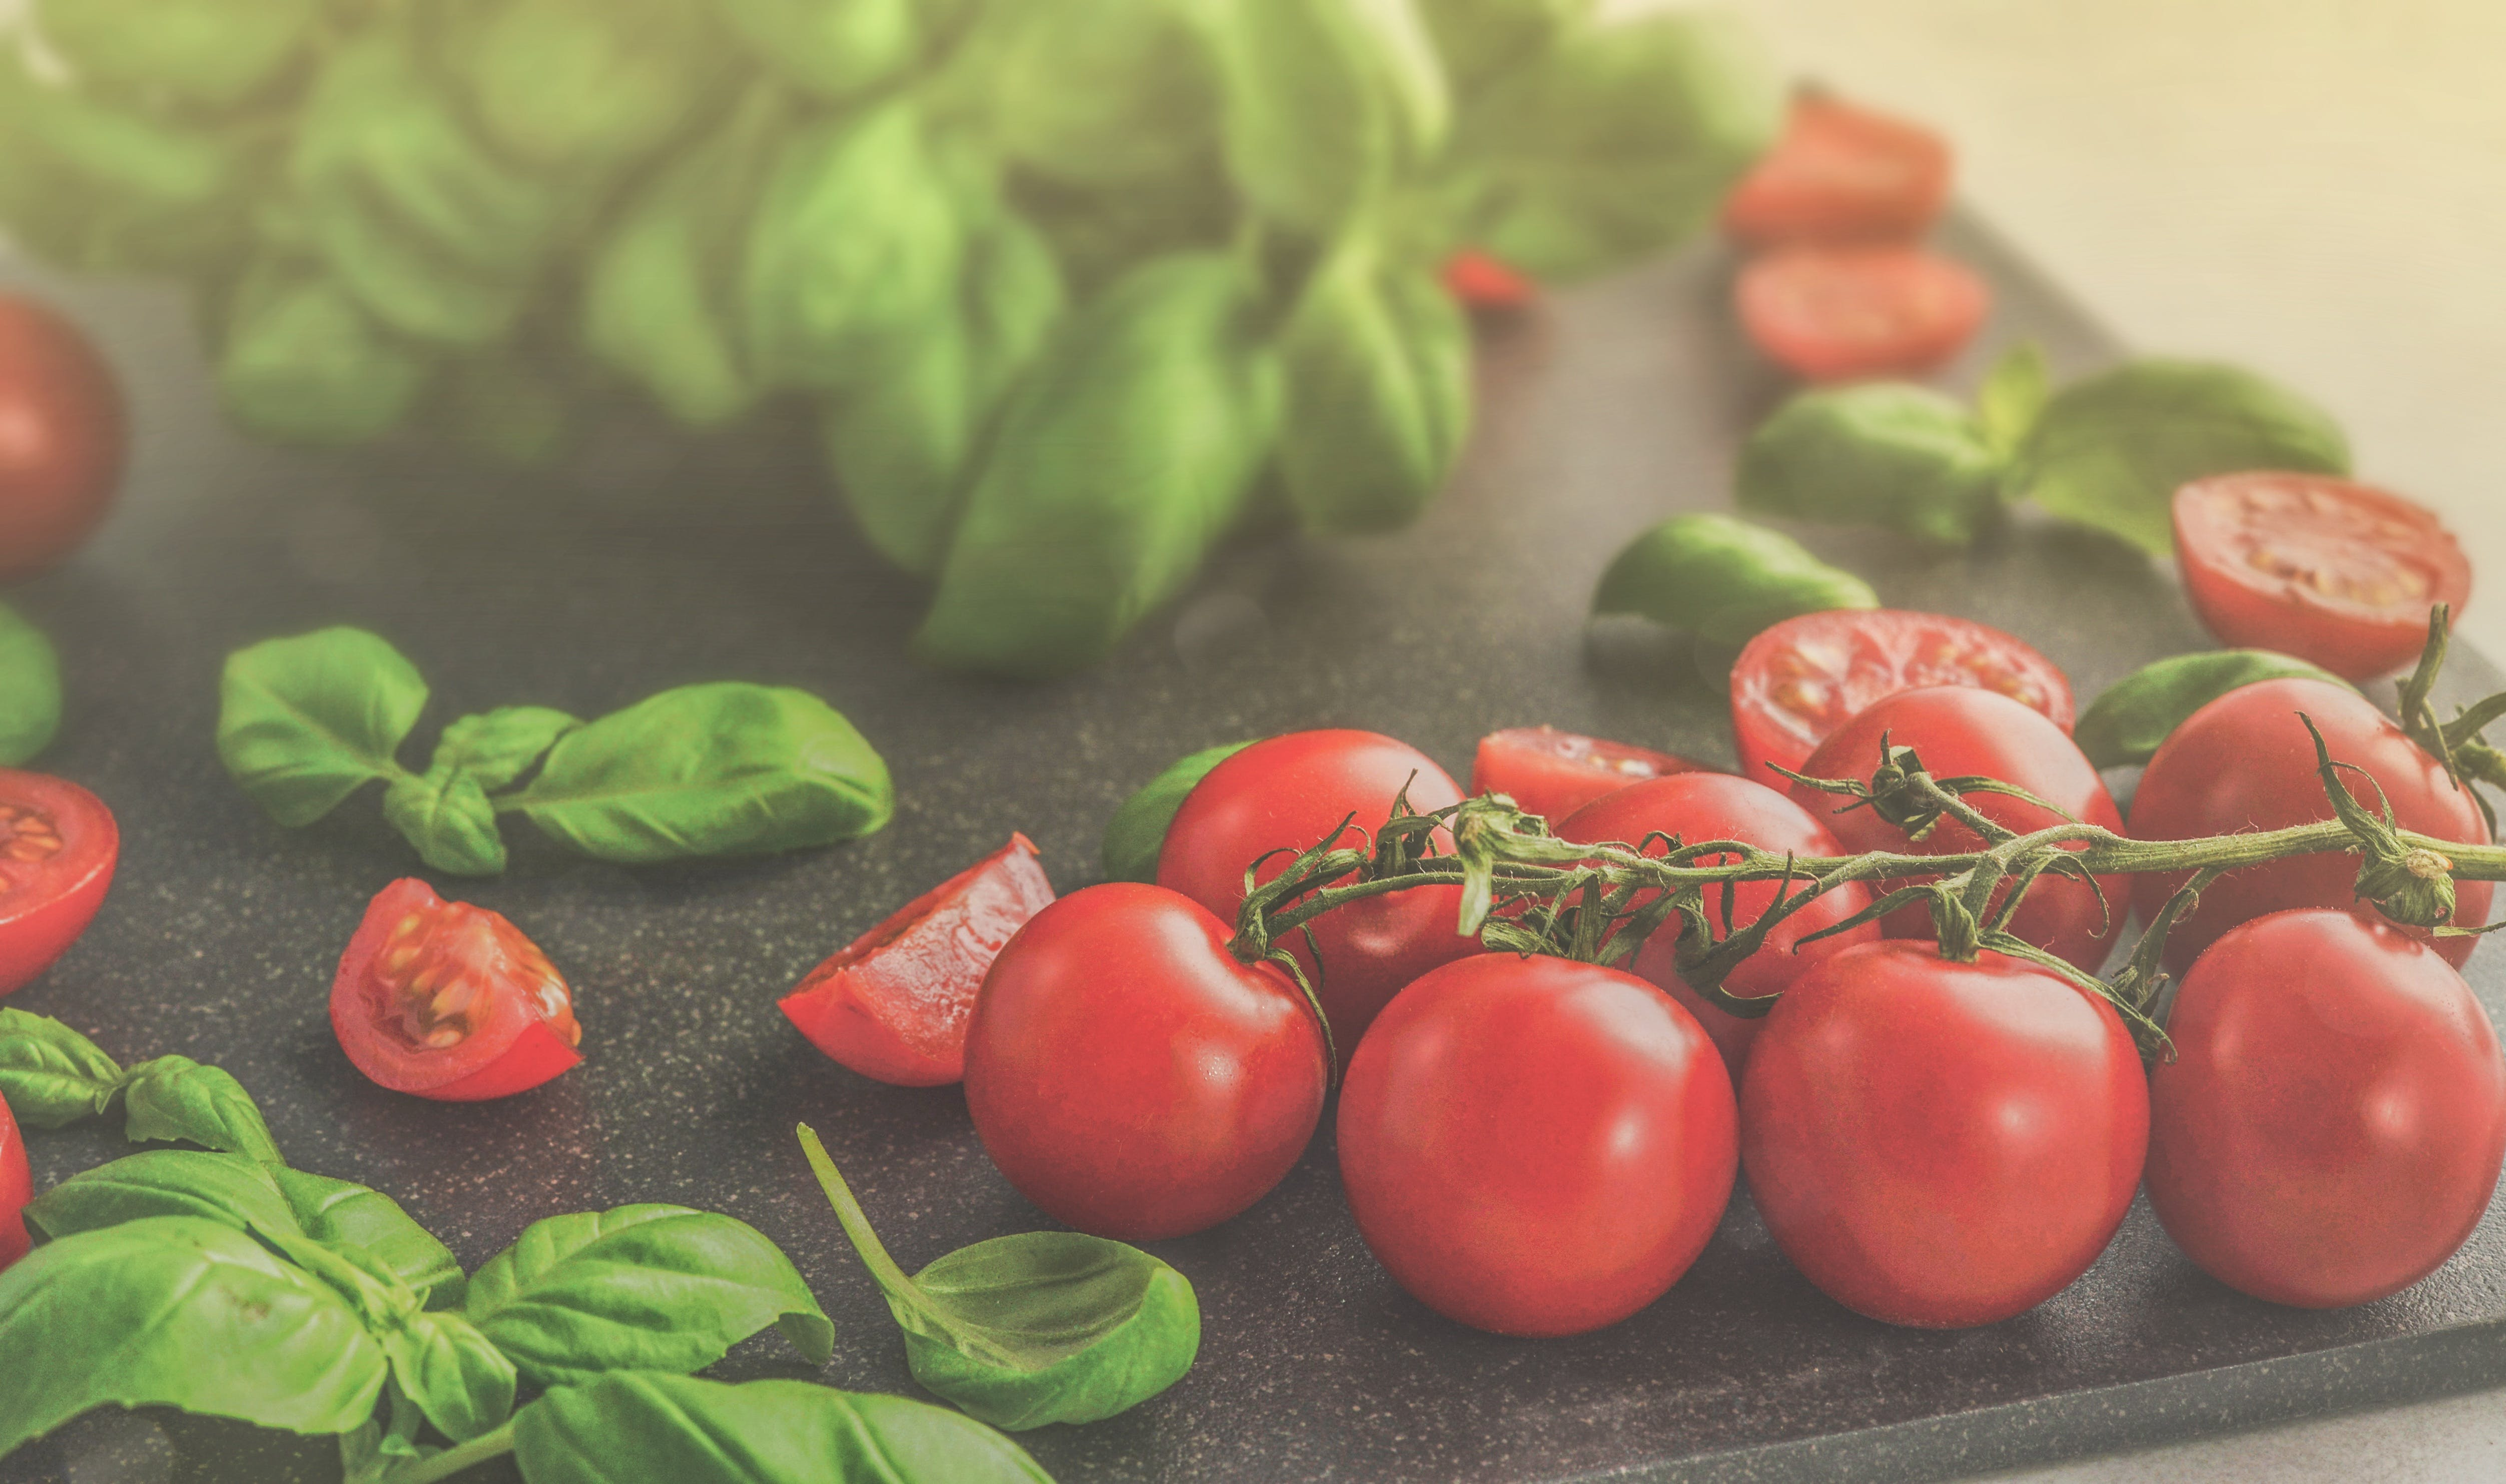 Photo of Tomatoes Near Green Leaves